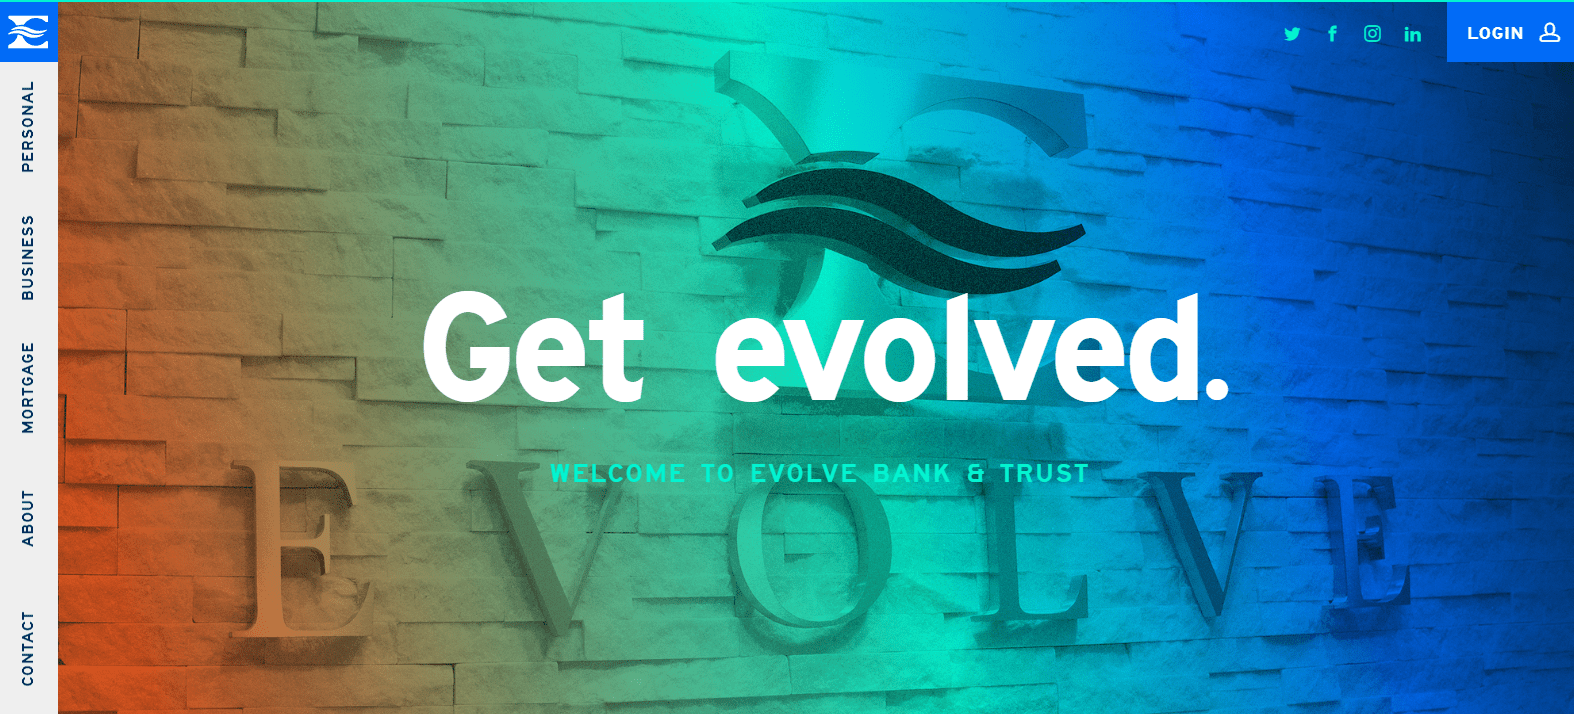 Evolve Bank & Trust, Andrea Meador